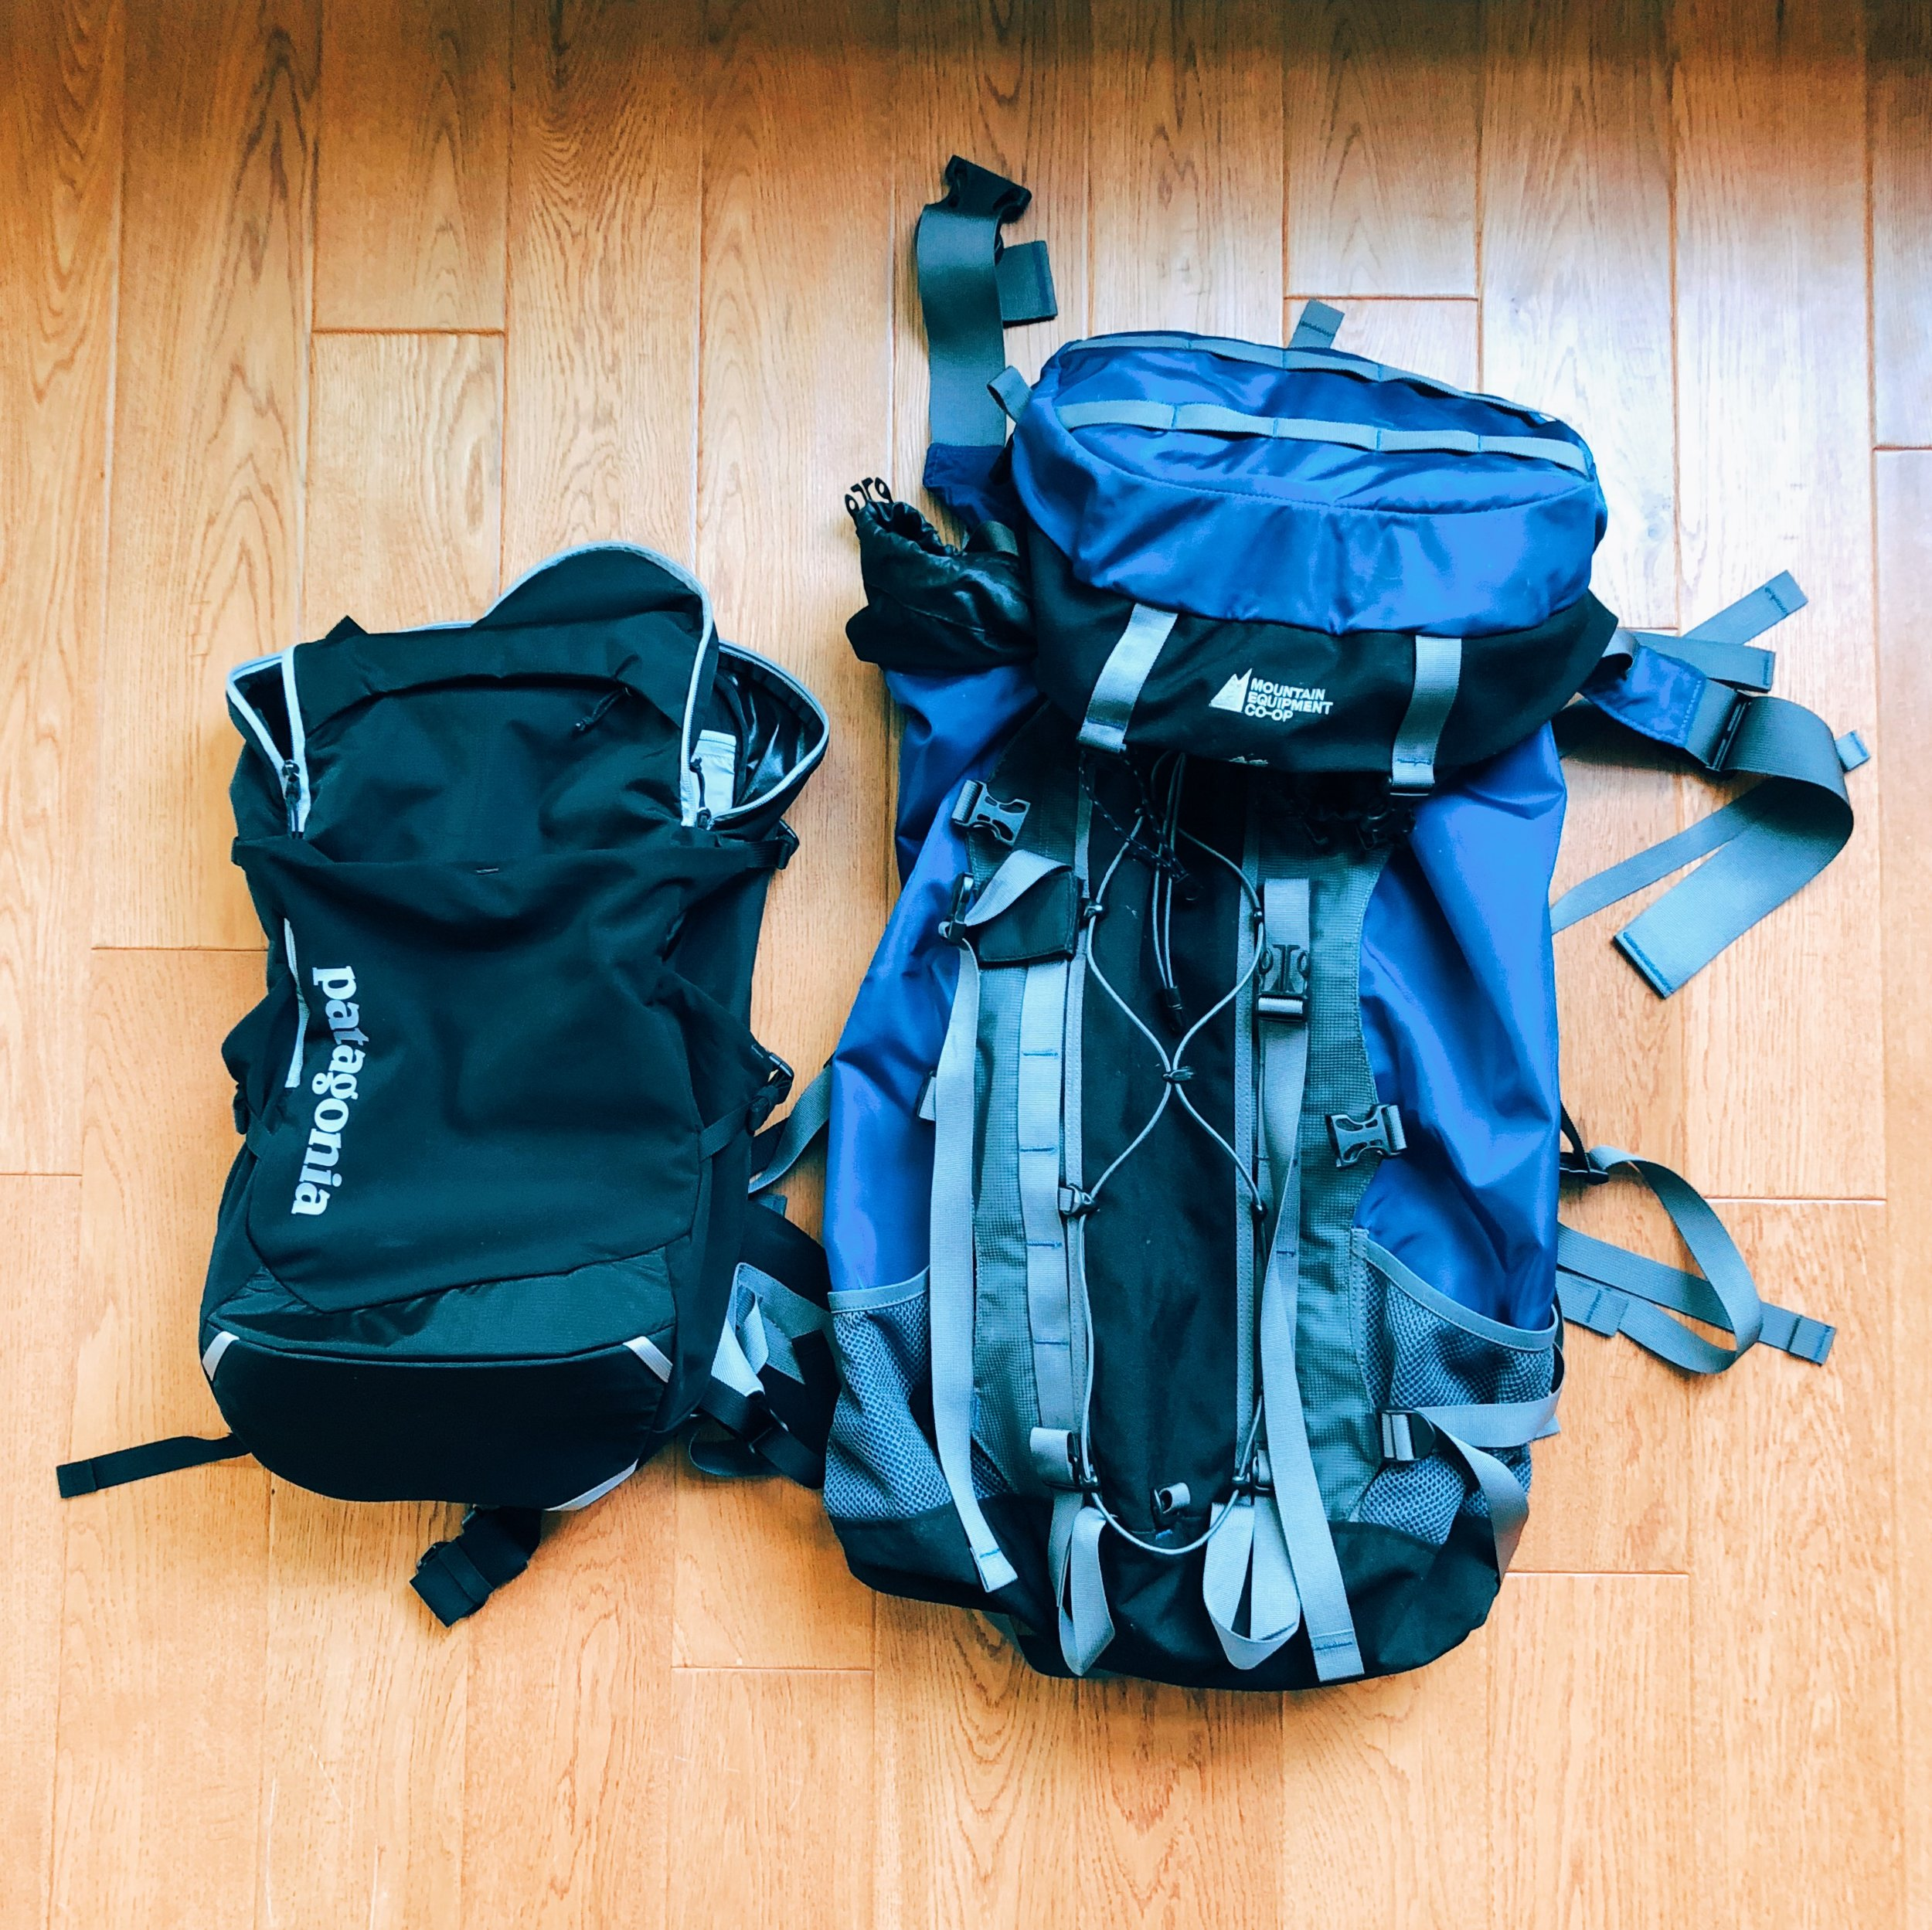 Backpack options for Peru. Plus helpful space-saving packing tips. #packinglist #peru #packinglistforperu